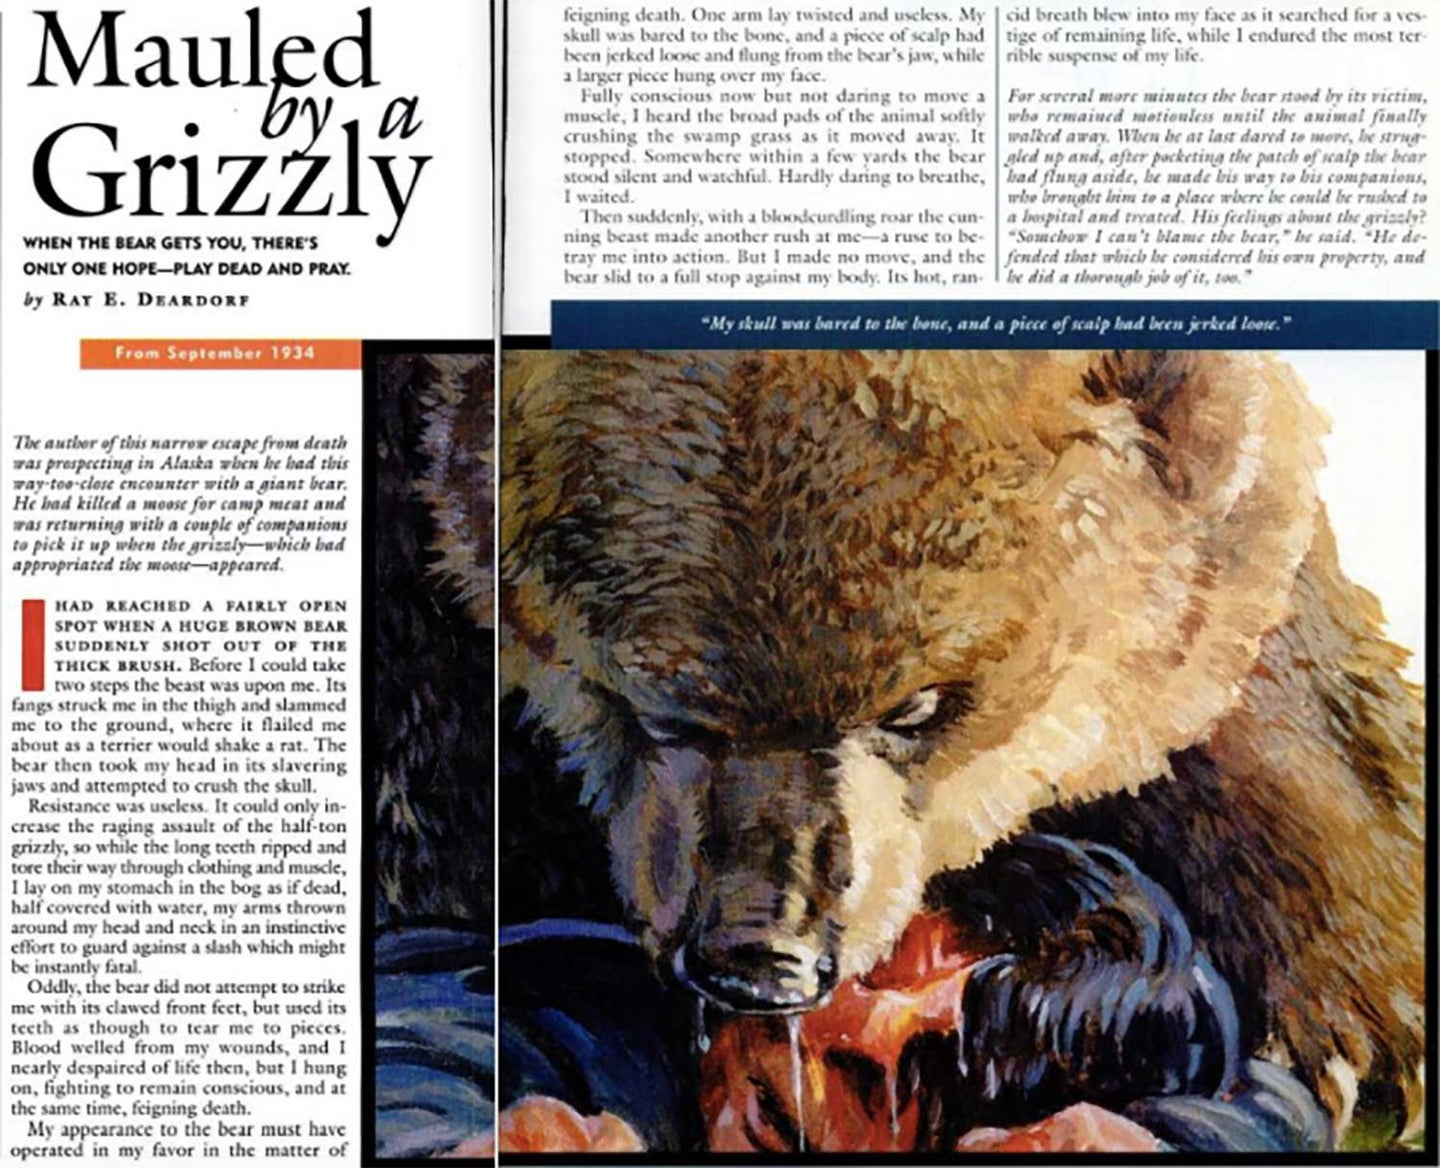 A magazine clipping from Field & stream showing a grizzly bear mauling